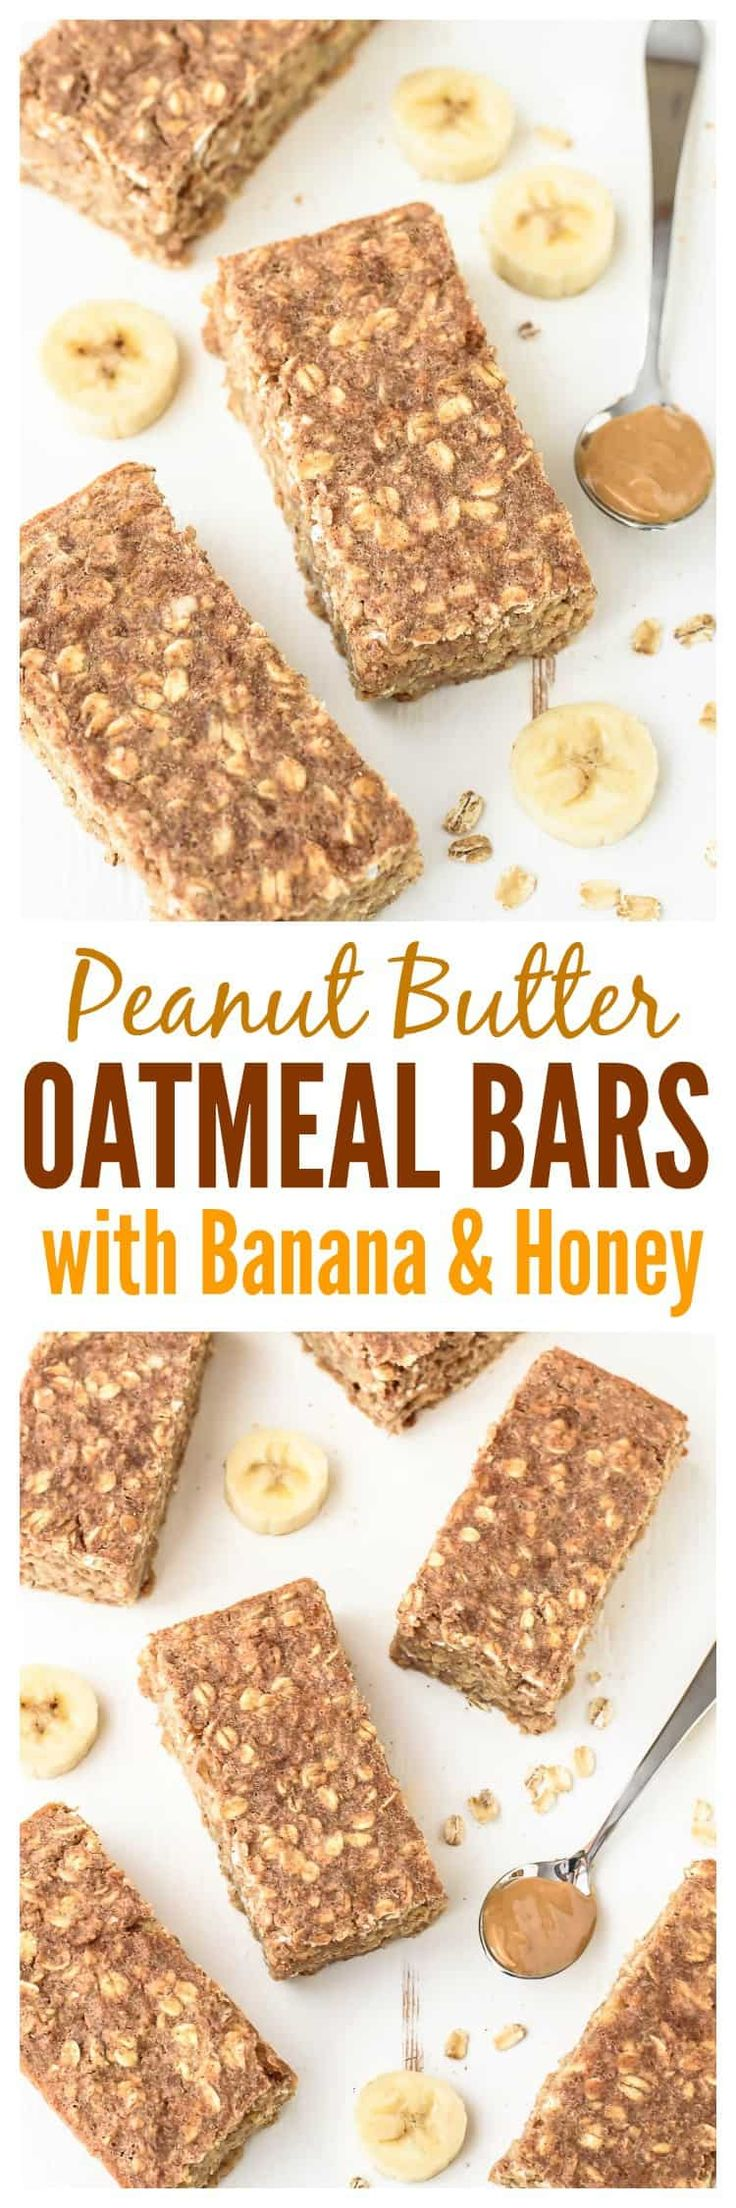 Healthy, filling and delicious Oatmeal Breakfast Bars with peanut butter, banana, and honey. This breakfast bars recipe will keep you powered for hours. #breakfast #oatmeal #energybars via @wellplated